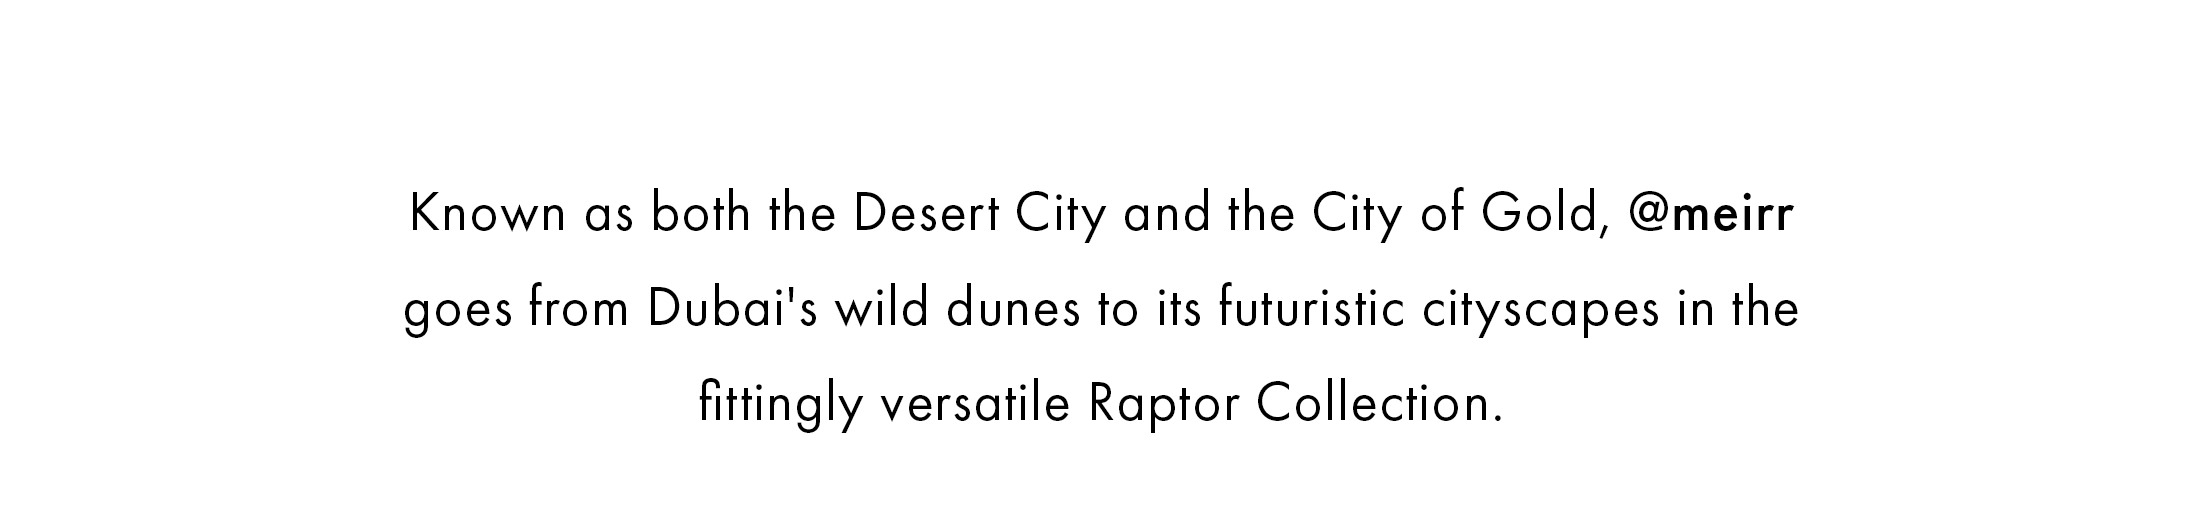 Known as both the Desert City and the City of Gold, @meirr goes from Dubai's wild dunes to its futuristic cityscapes in the fittingly versatile Raptor Collection.